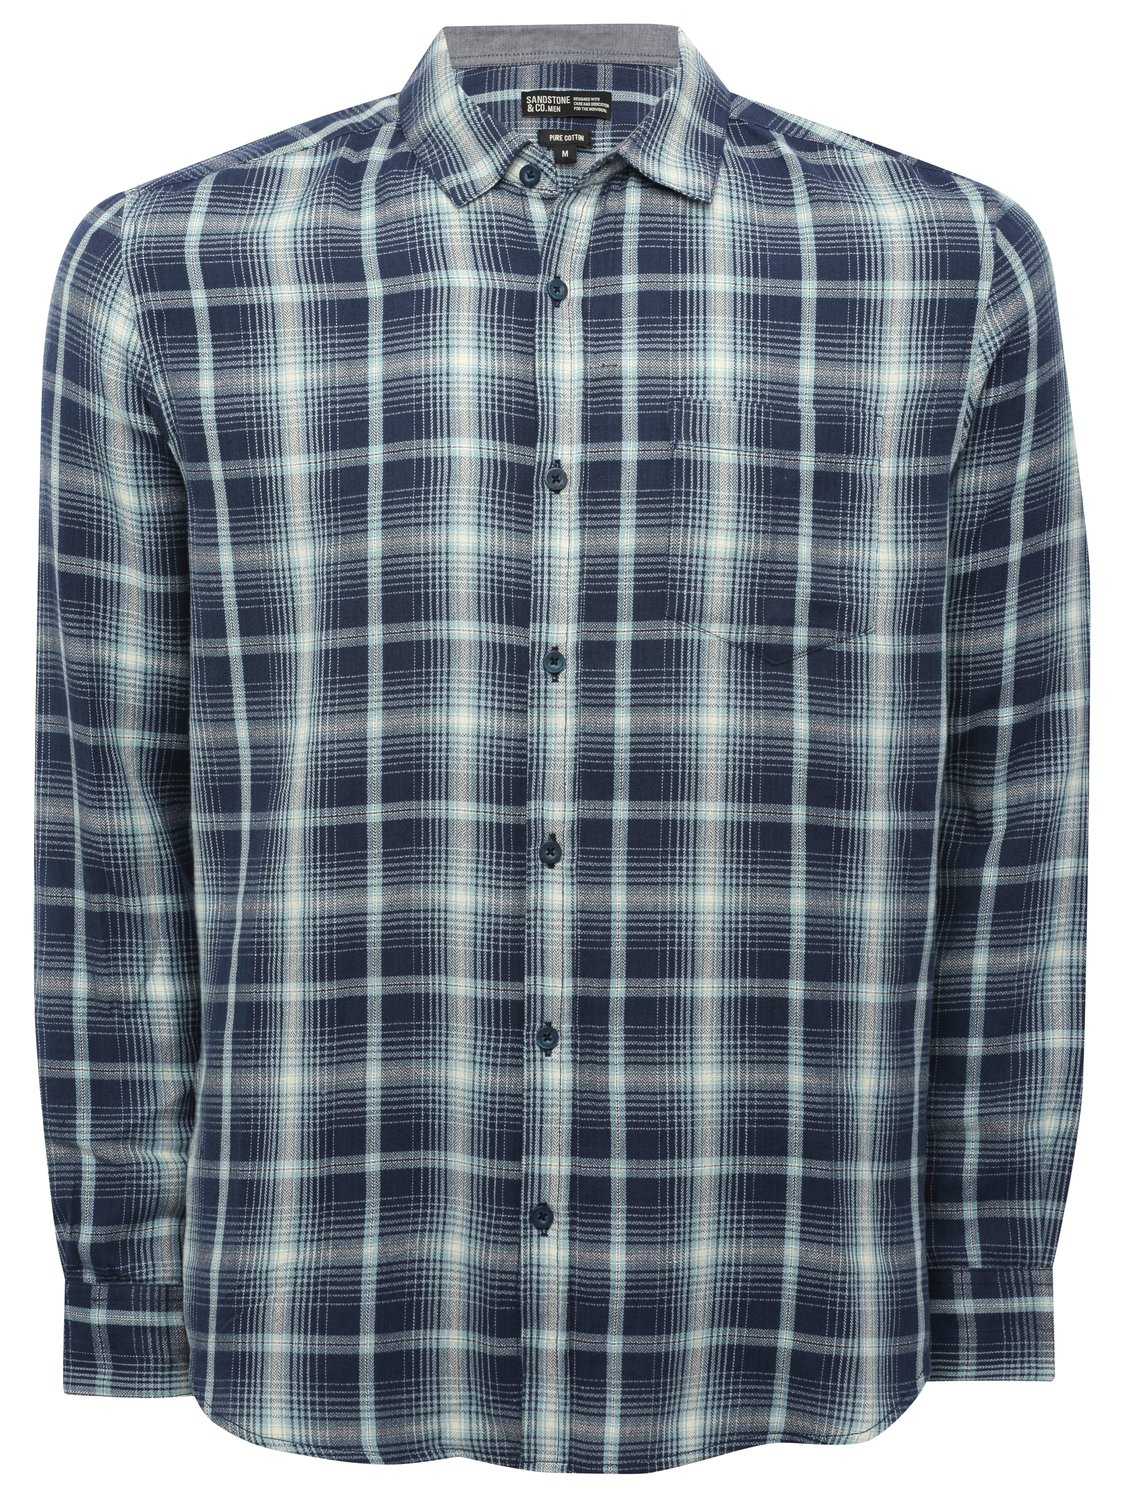 Image of Mens long sleeve 100% cotton soft check pattern button up collar casual shirt - Blue